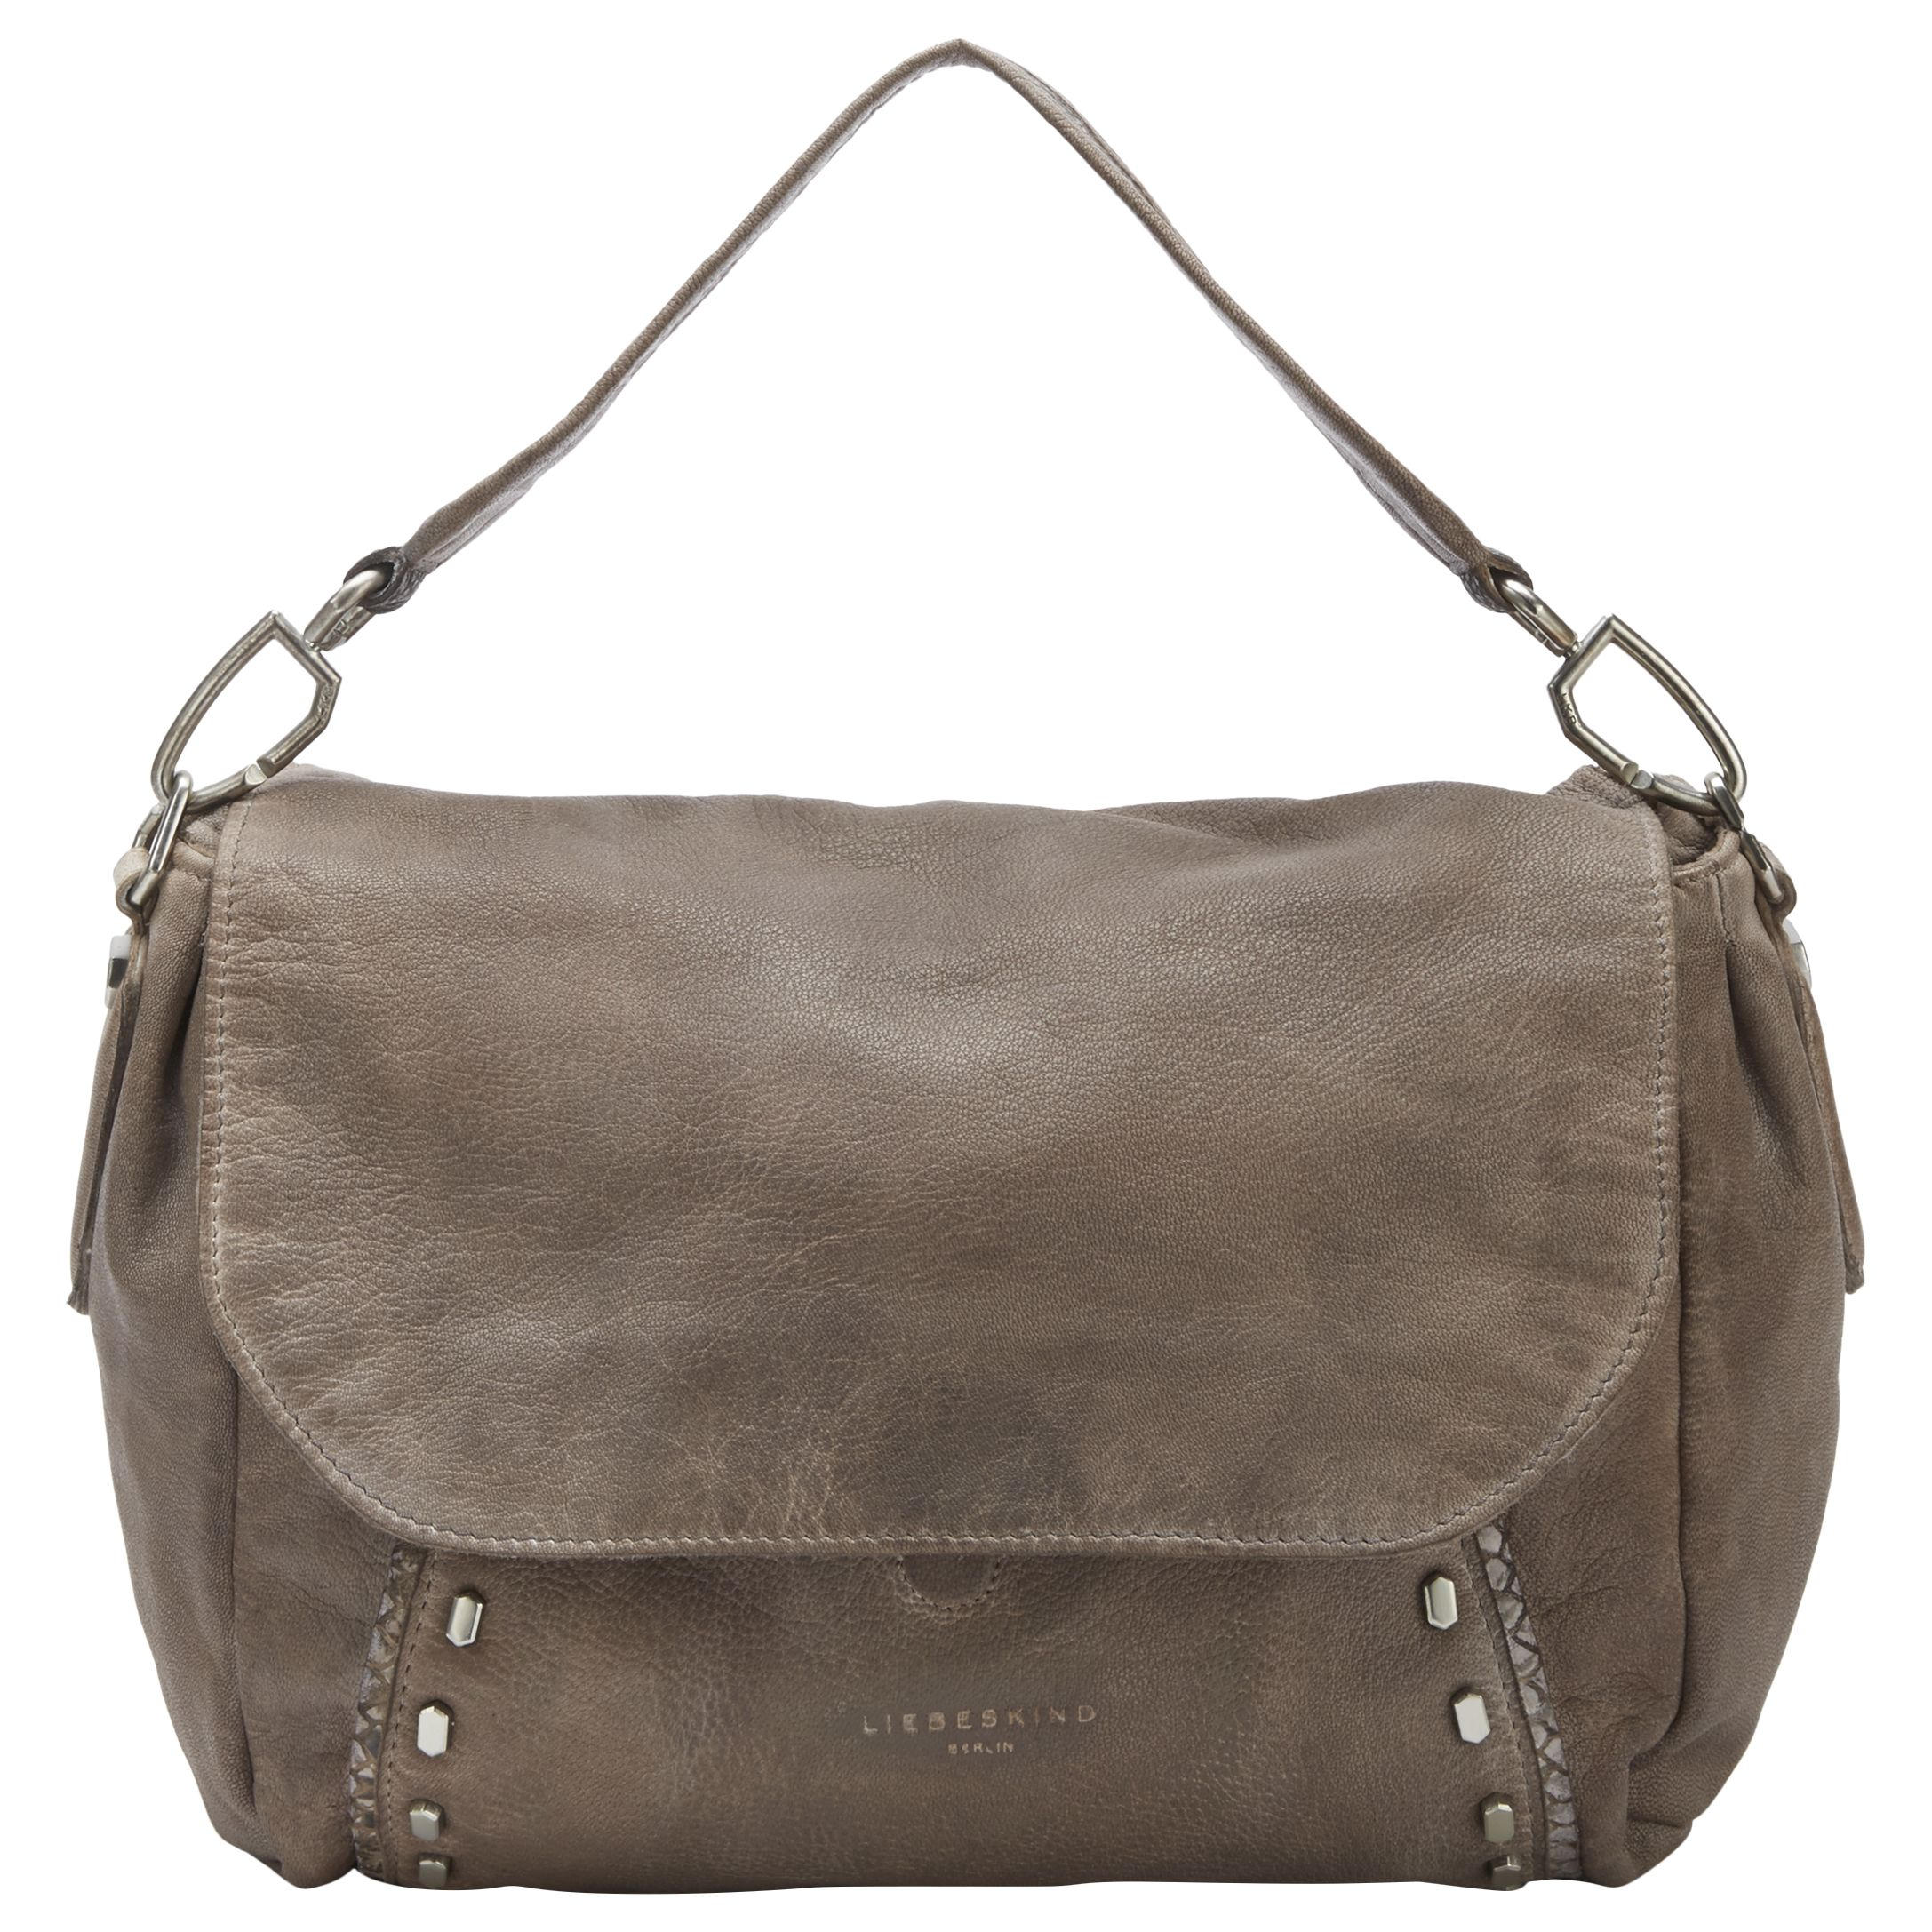 Liebeskind Liebeskind Fujimi Leather Shoulder Bag, Rhino Brown